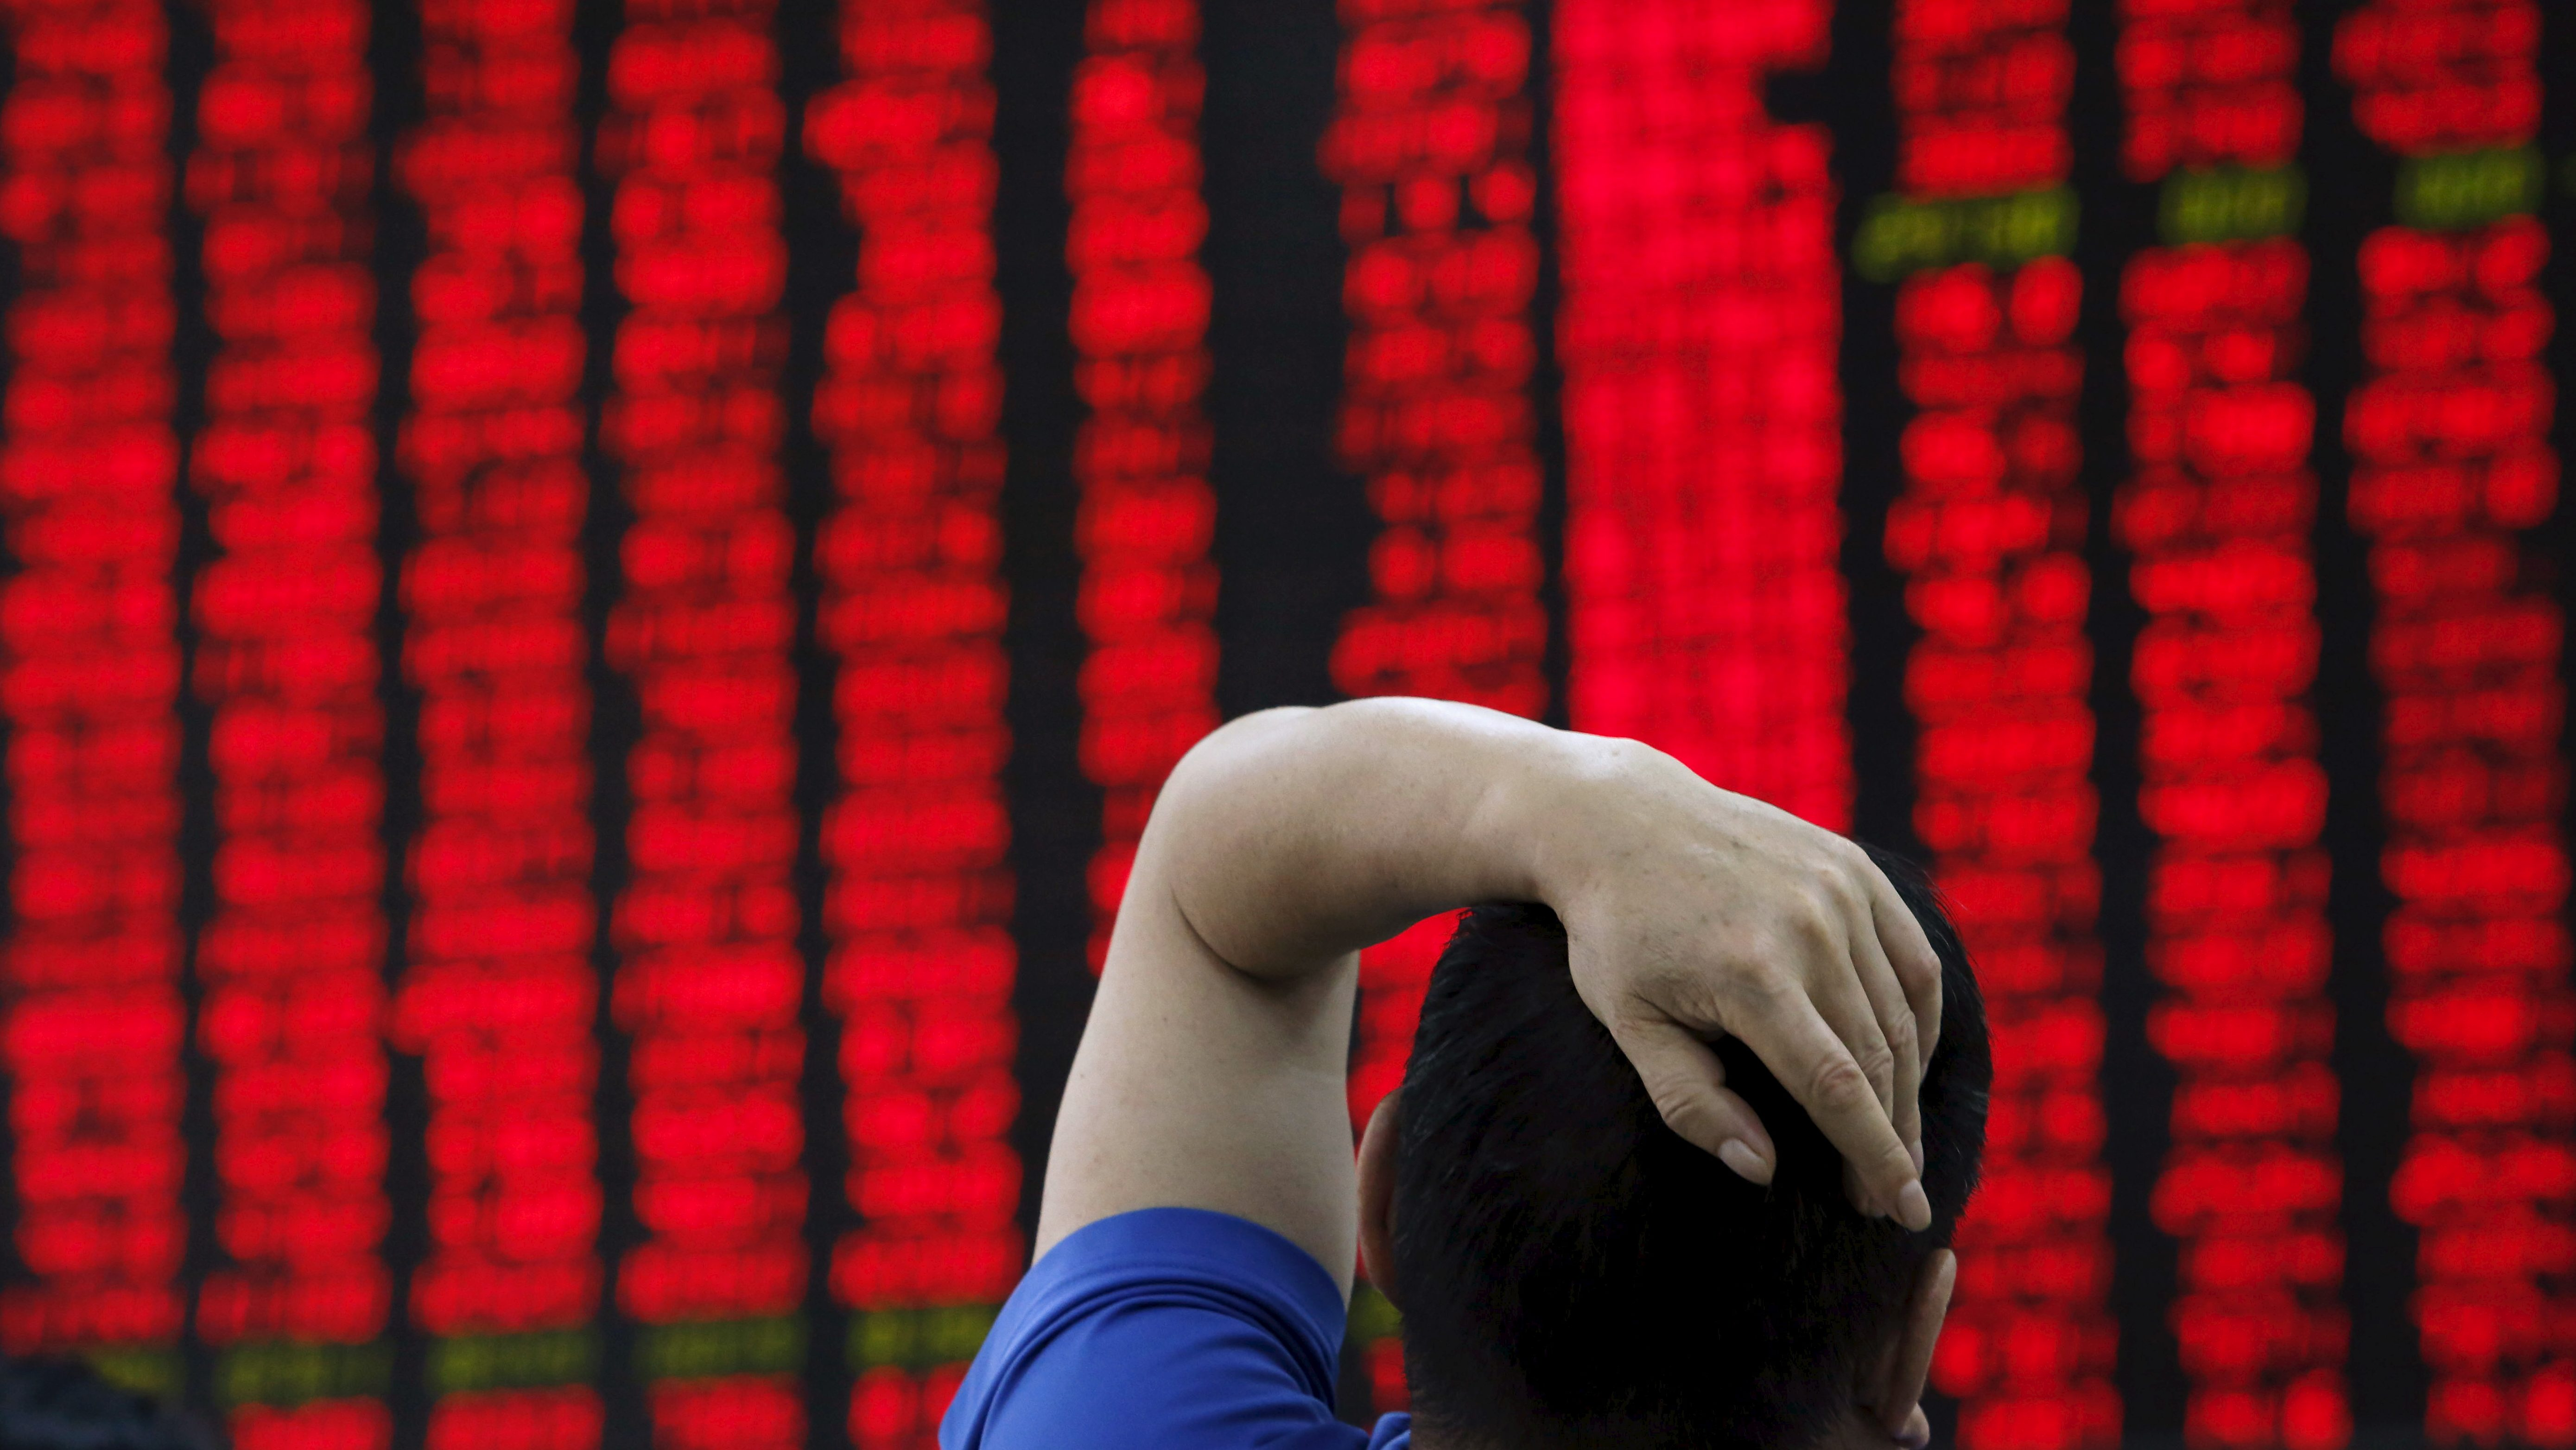 A man watches a board showing stock prices at a brokerage office in Beijing, China, July 1, 2015.